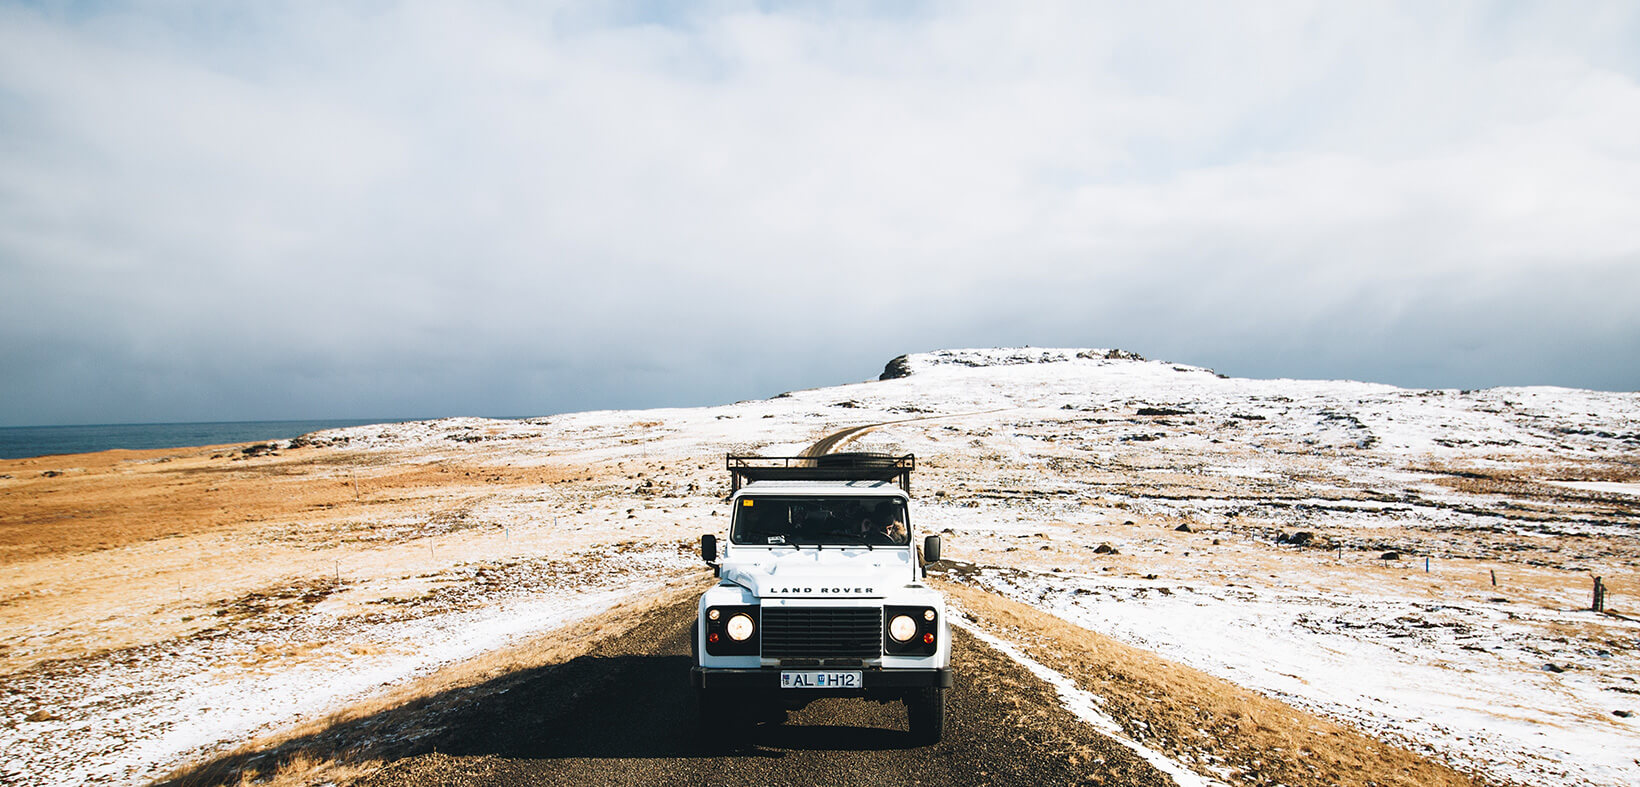 Landrover in Iceland